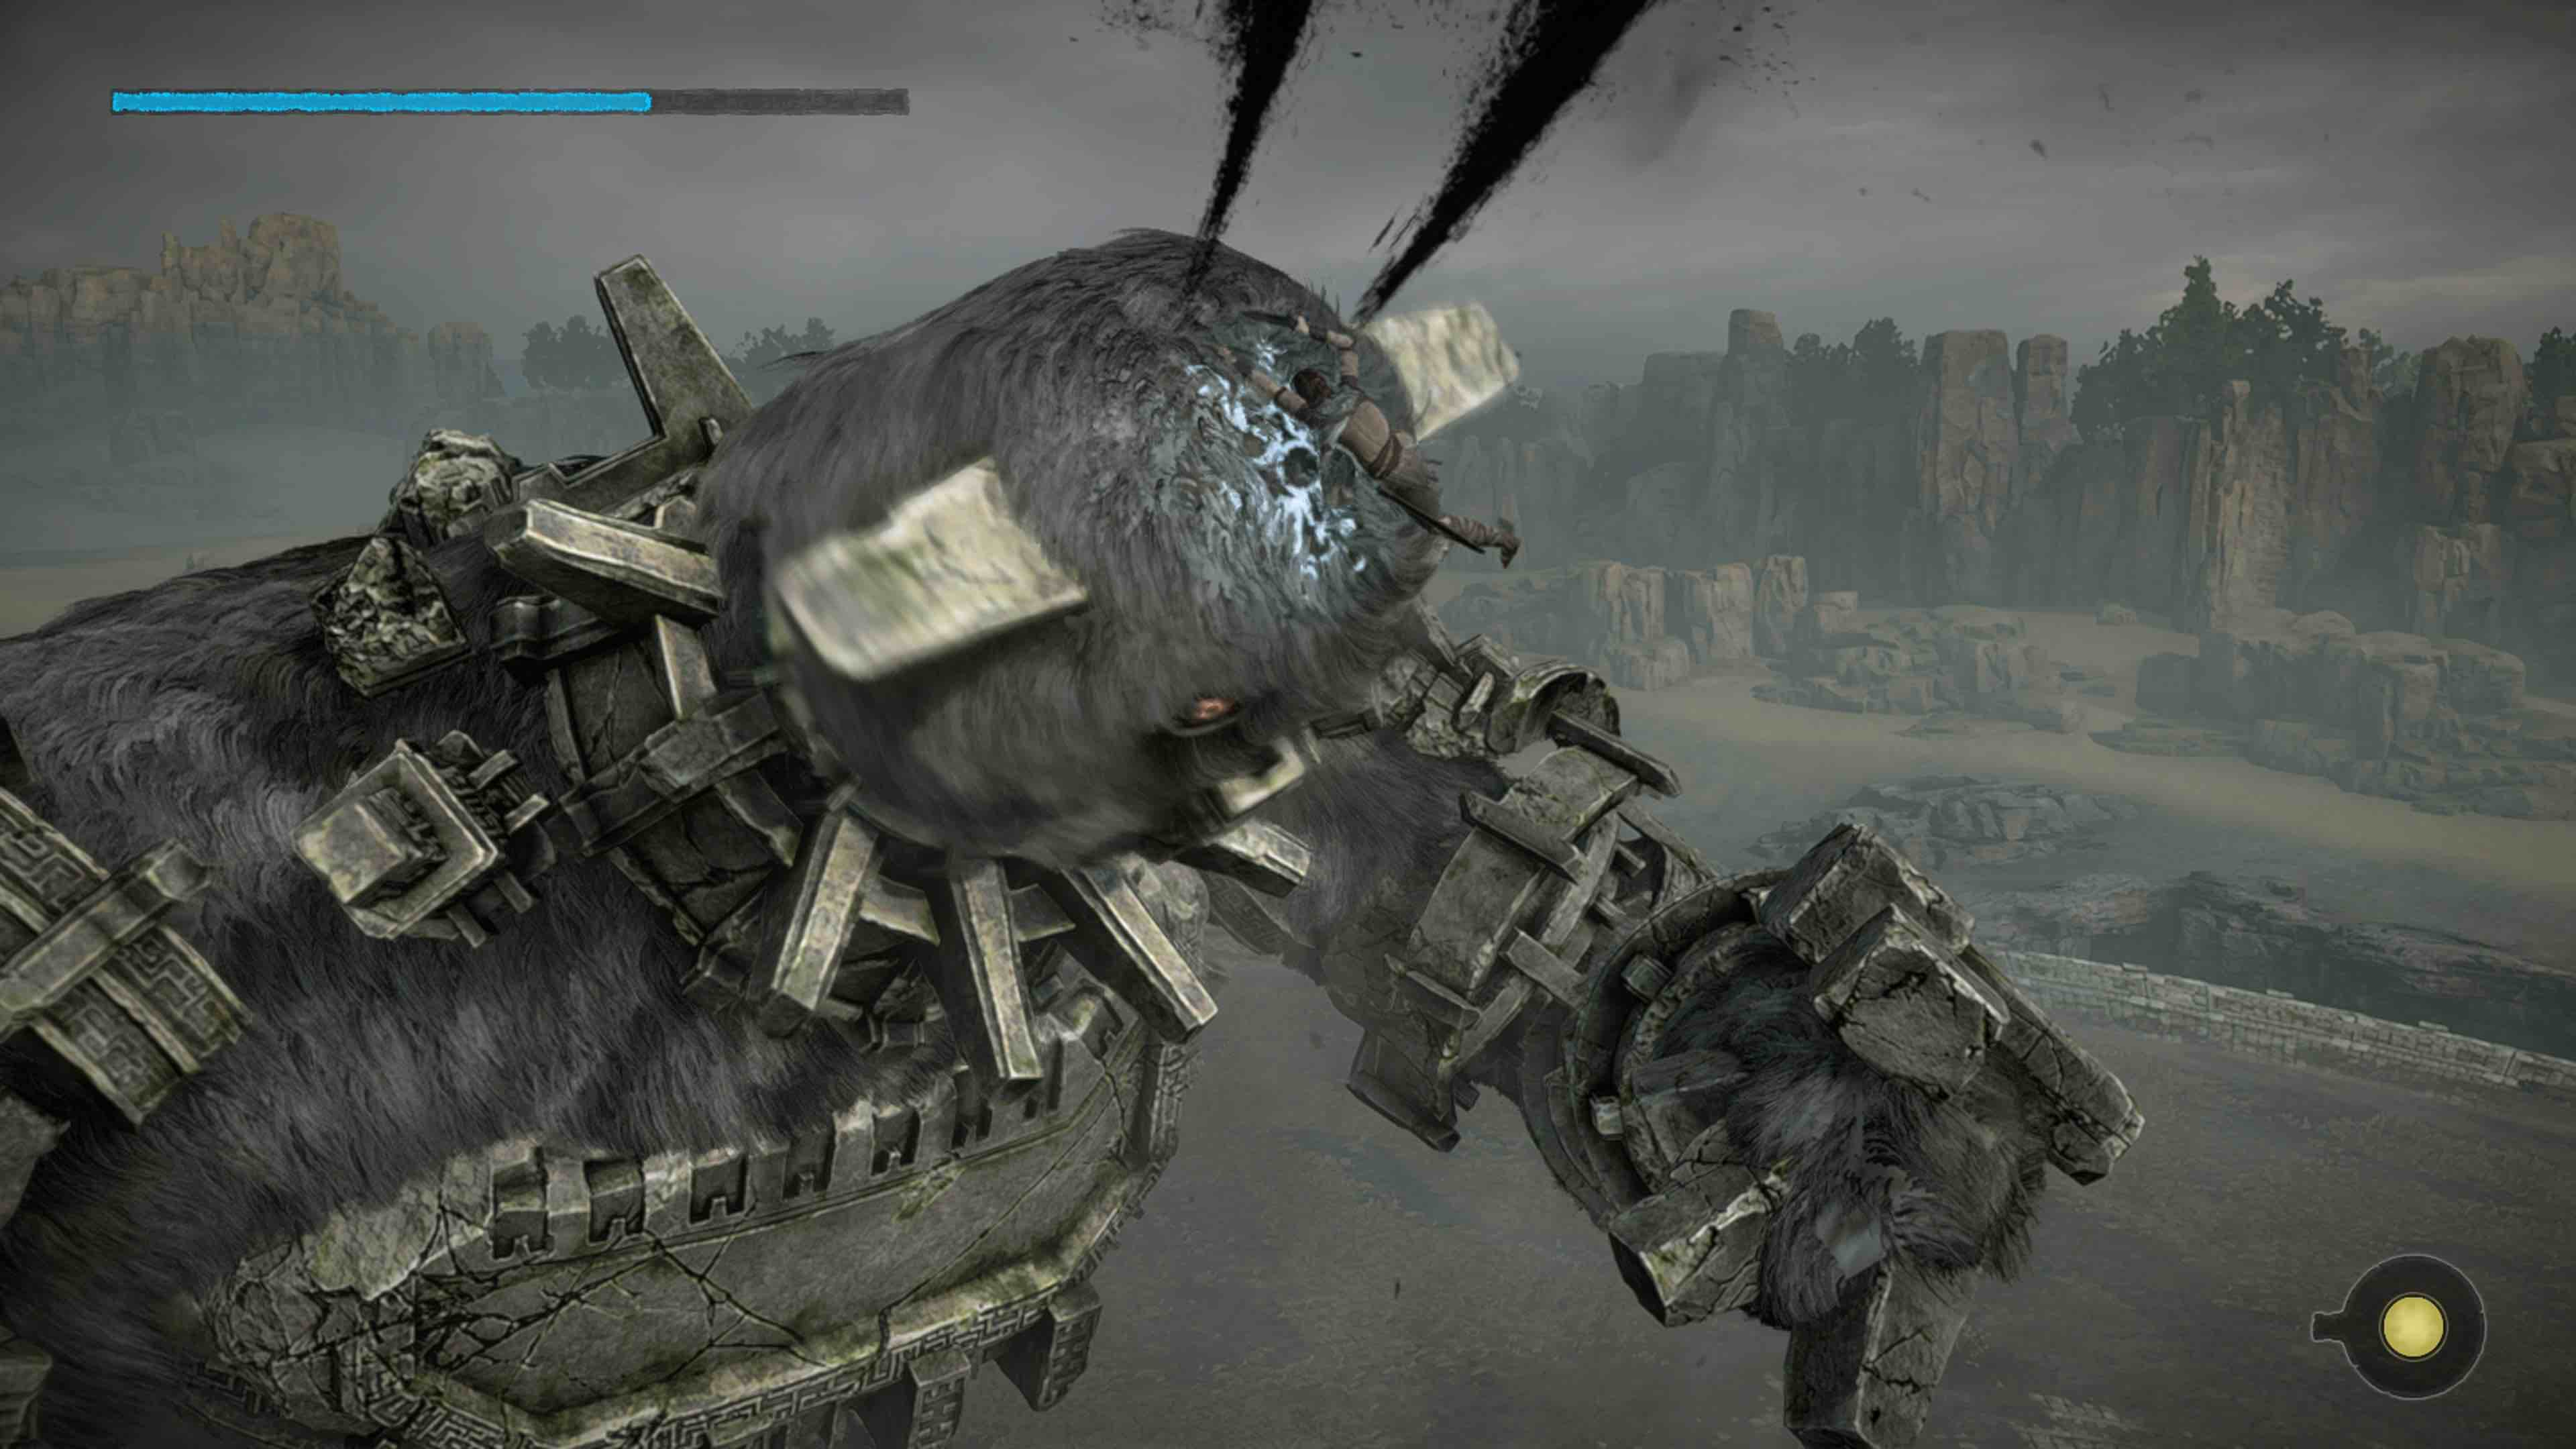 Shadow_of_the_Colossus_Coloso_3_3